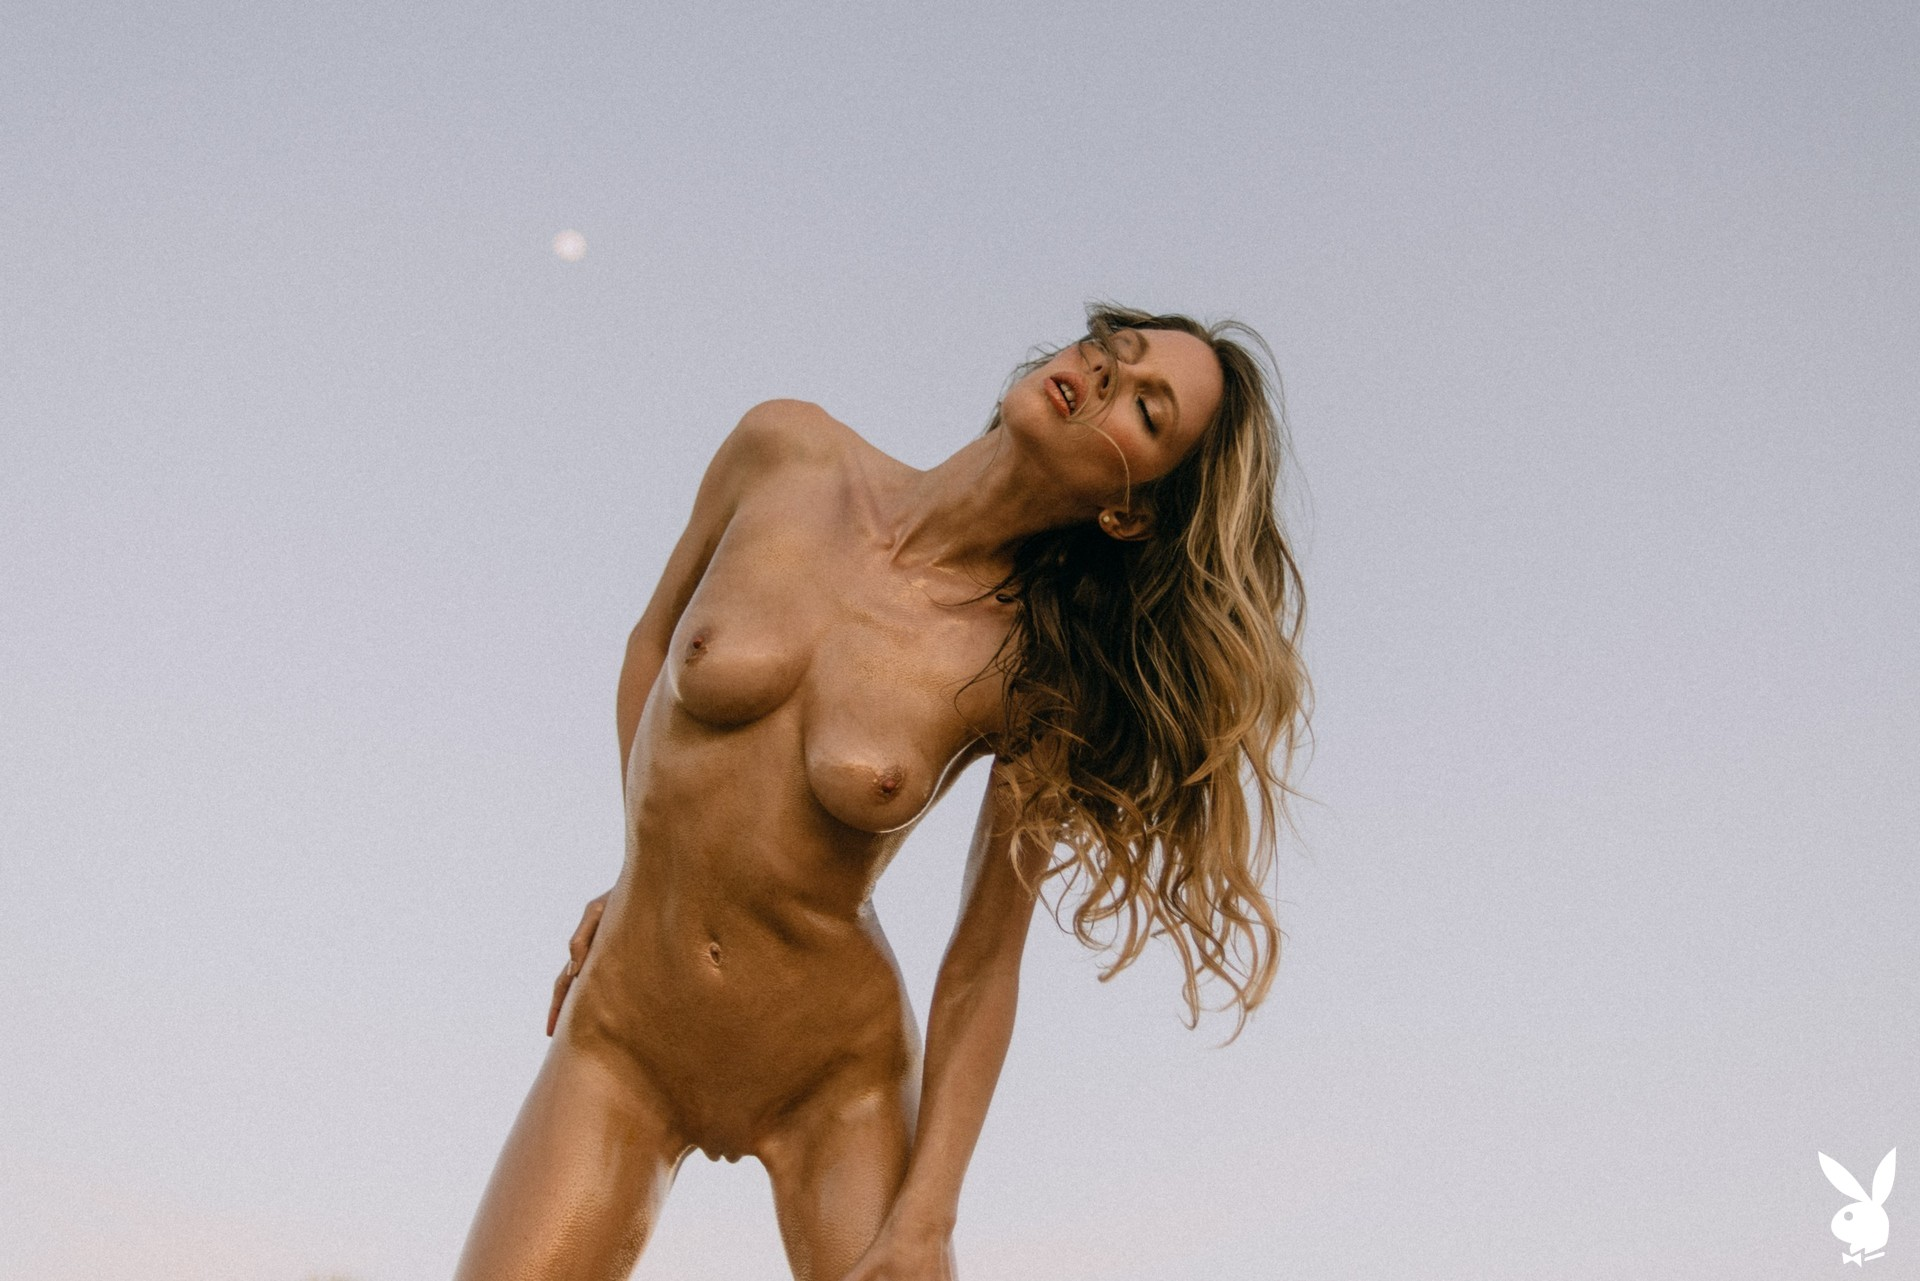 Ora Young In Dessert Shimmer Playboy Plus (27)